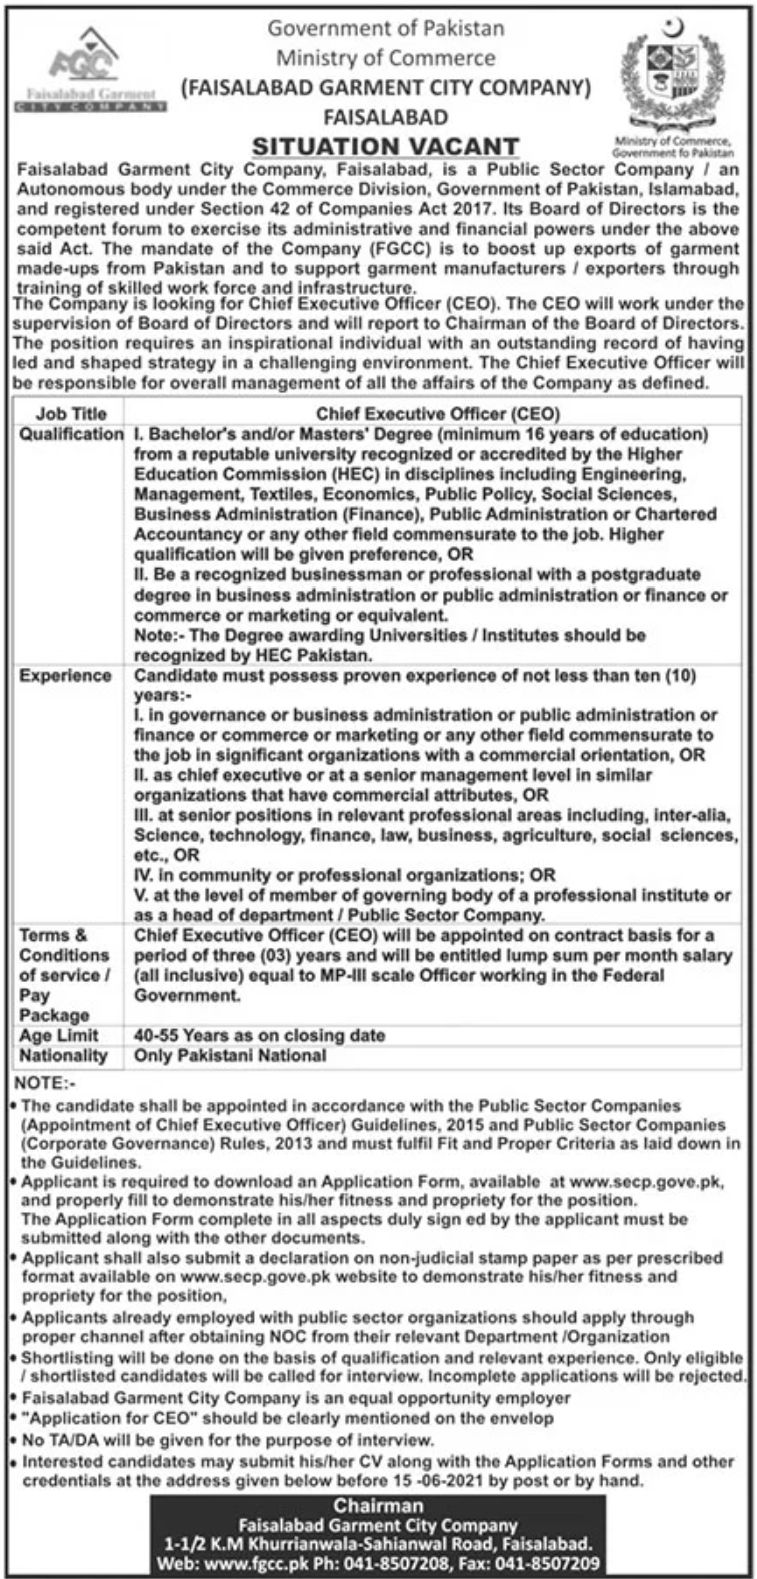 Government of Pakistan Ministry of Commerce Jobs May 2021